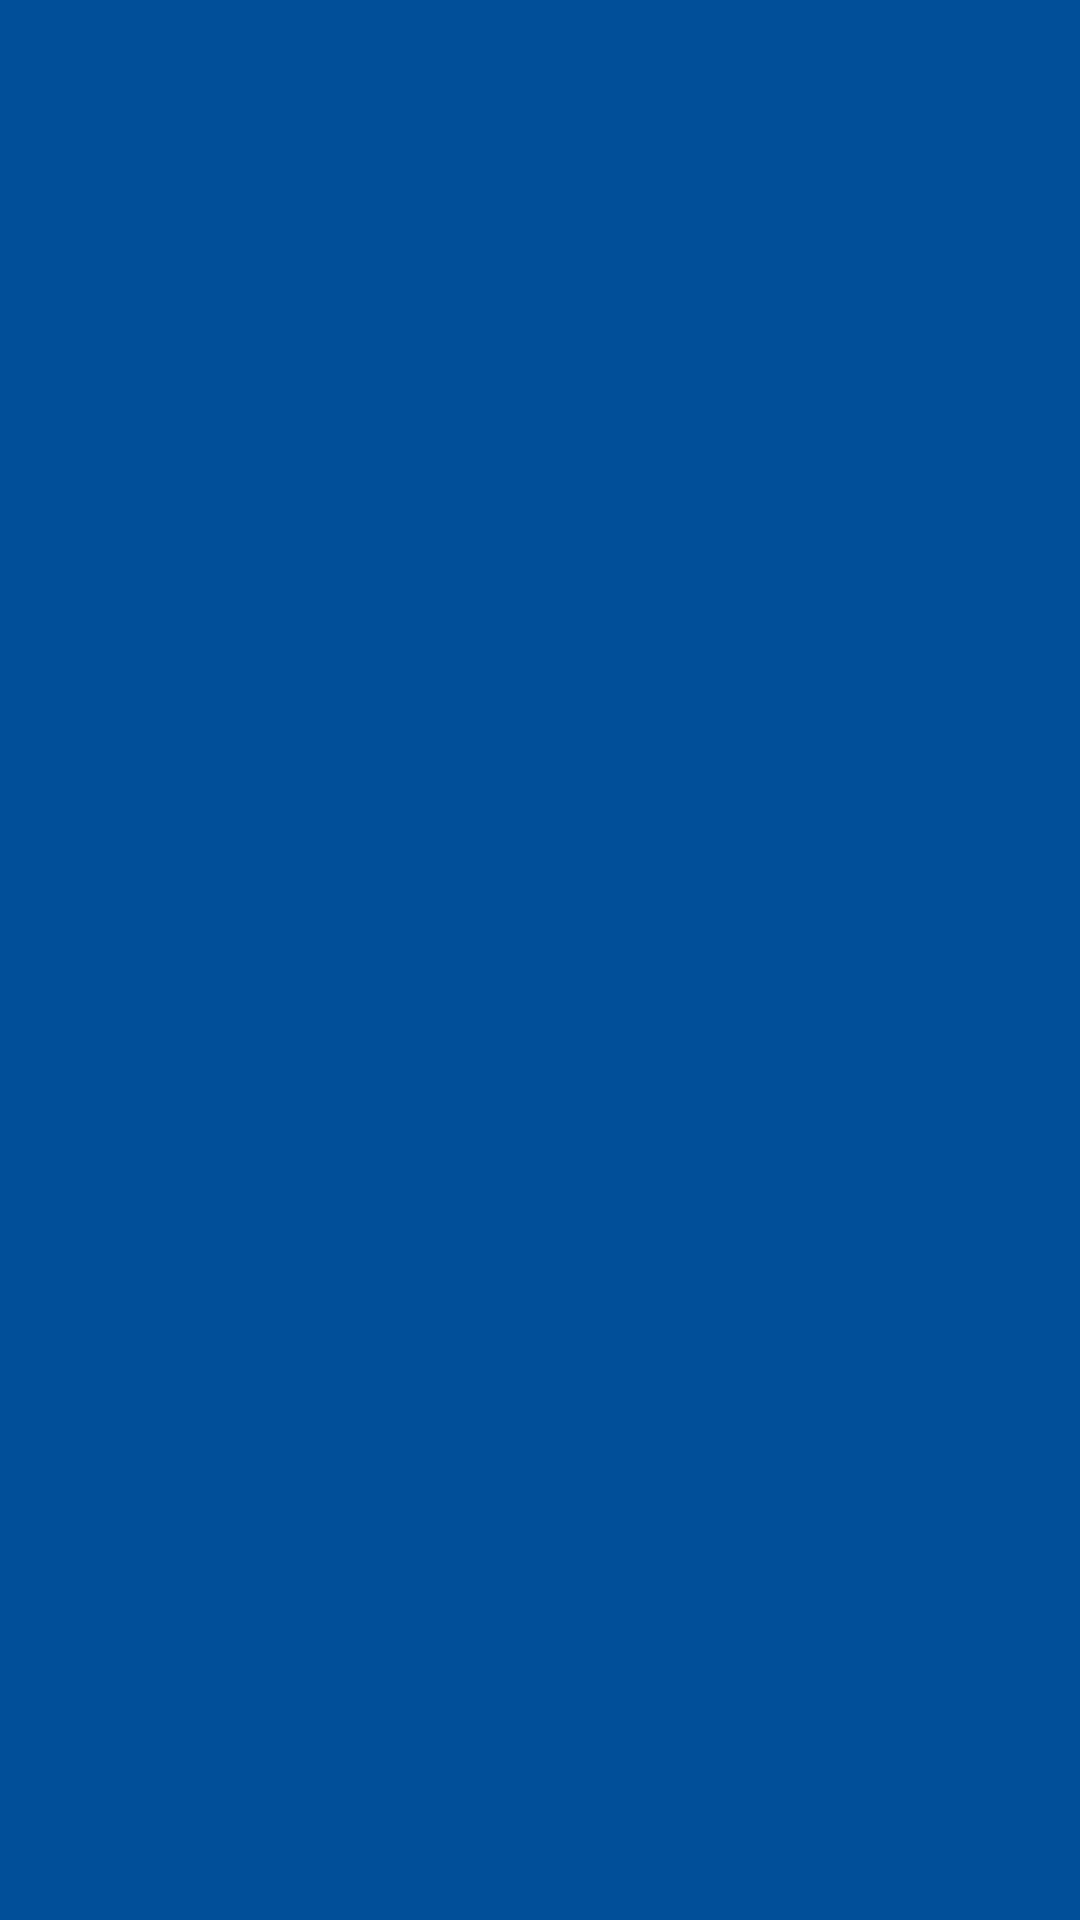 1080x1920 USAFA Blue Solid Color Background